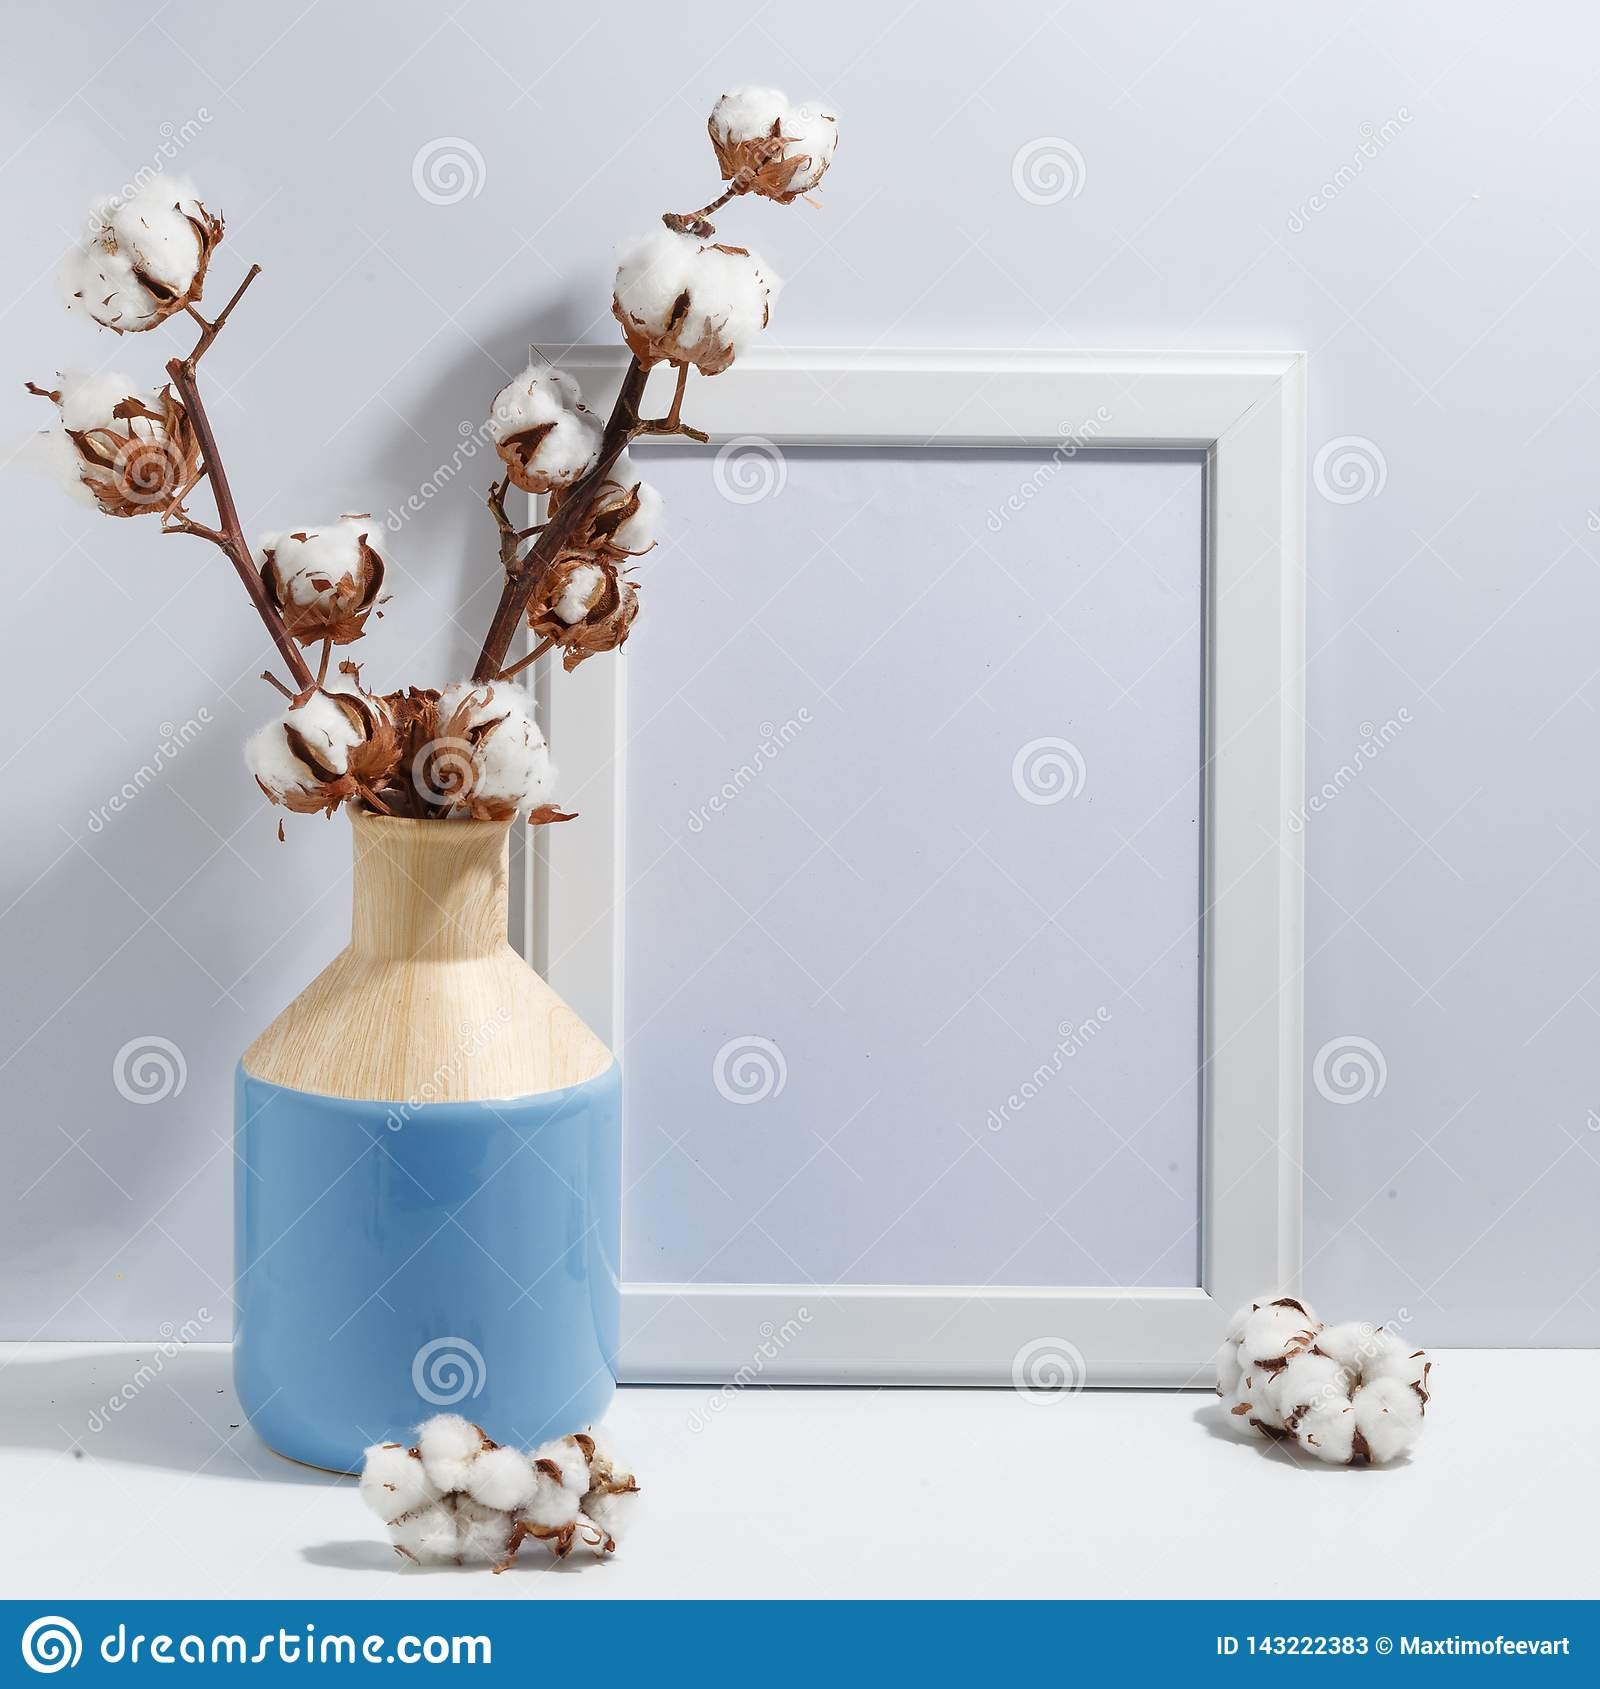 Mock up white frame and dry cotton twigs in blue vase on book shelf or desk. Minimalistic concept